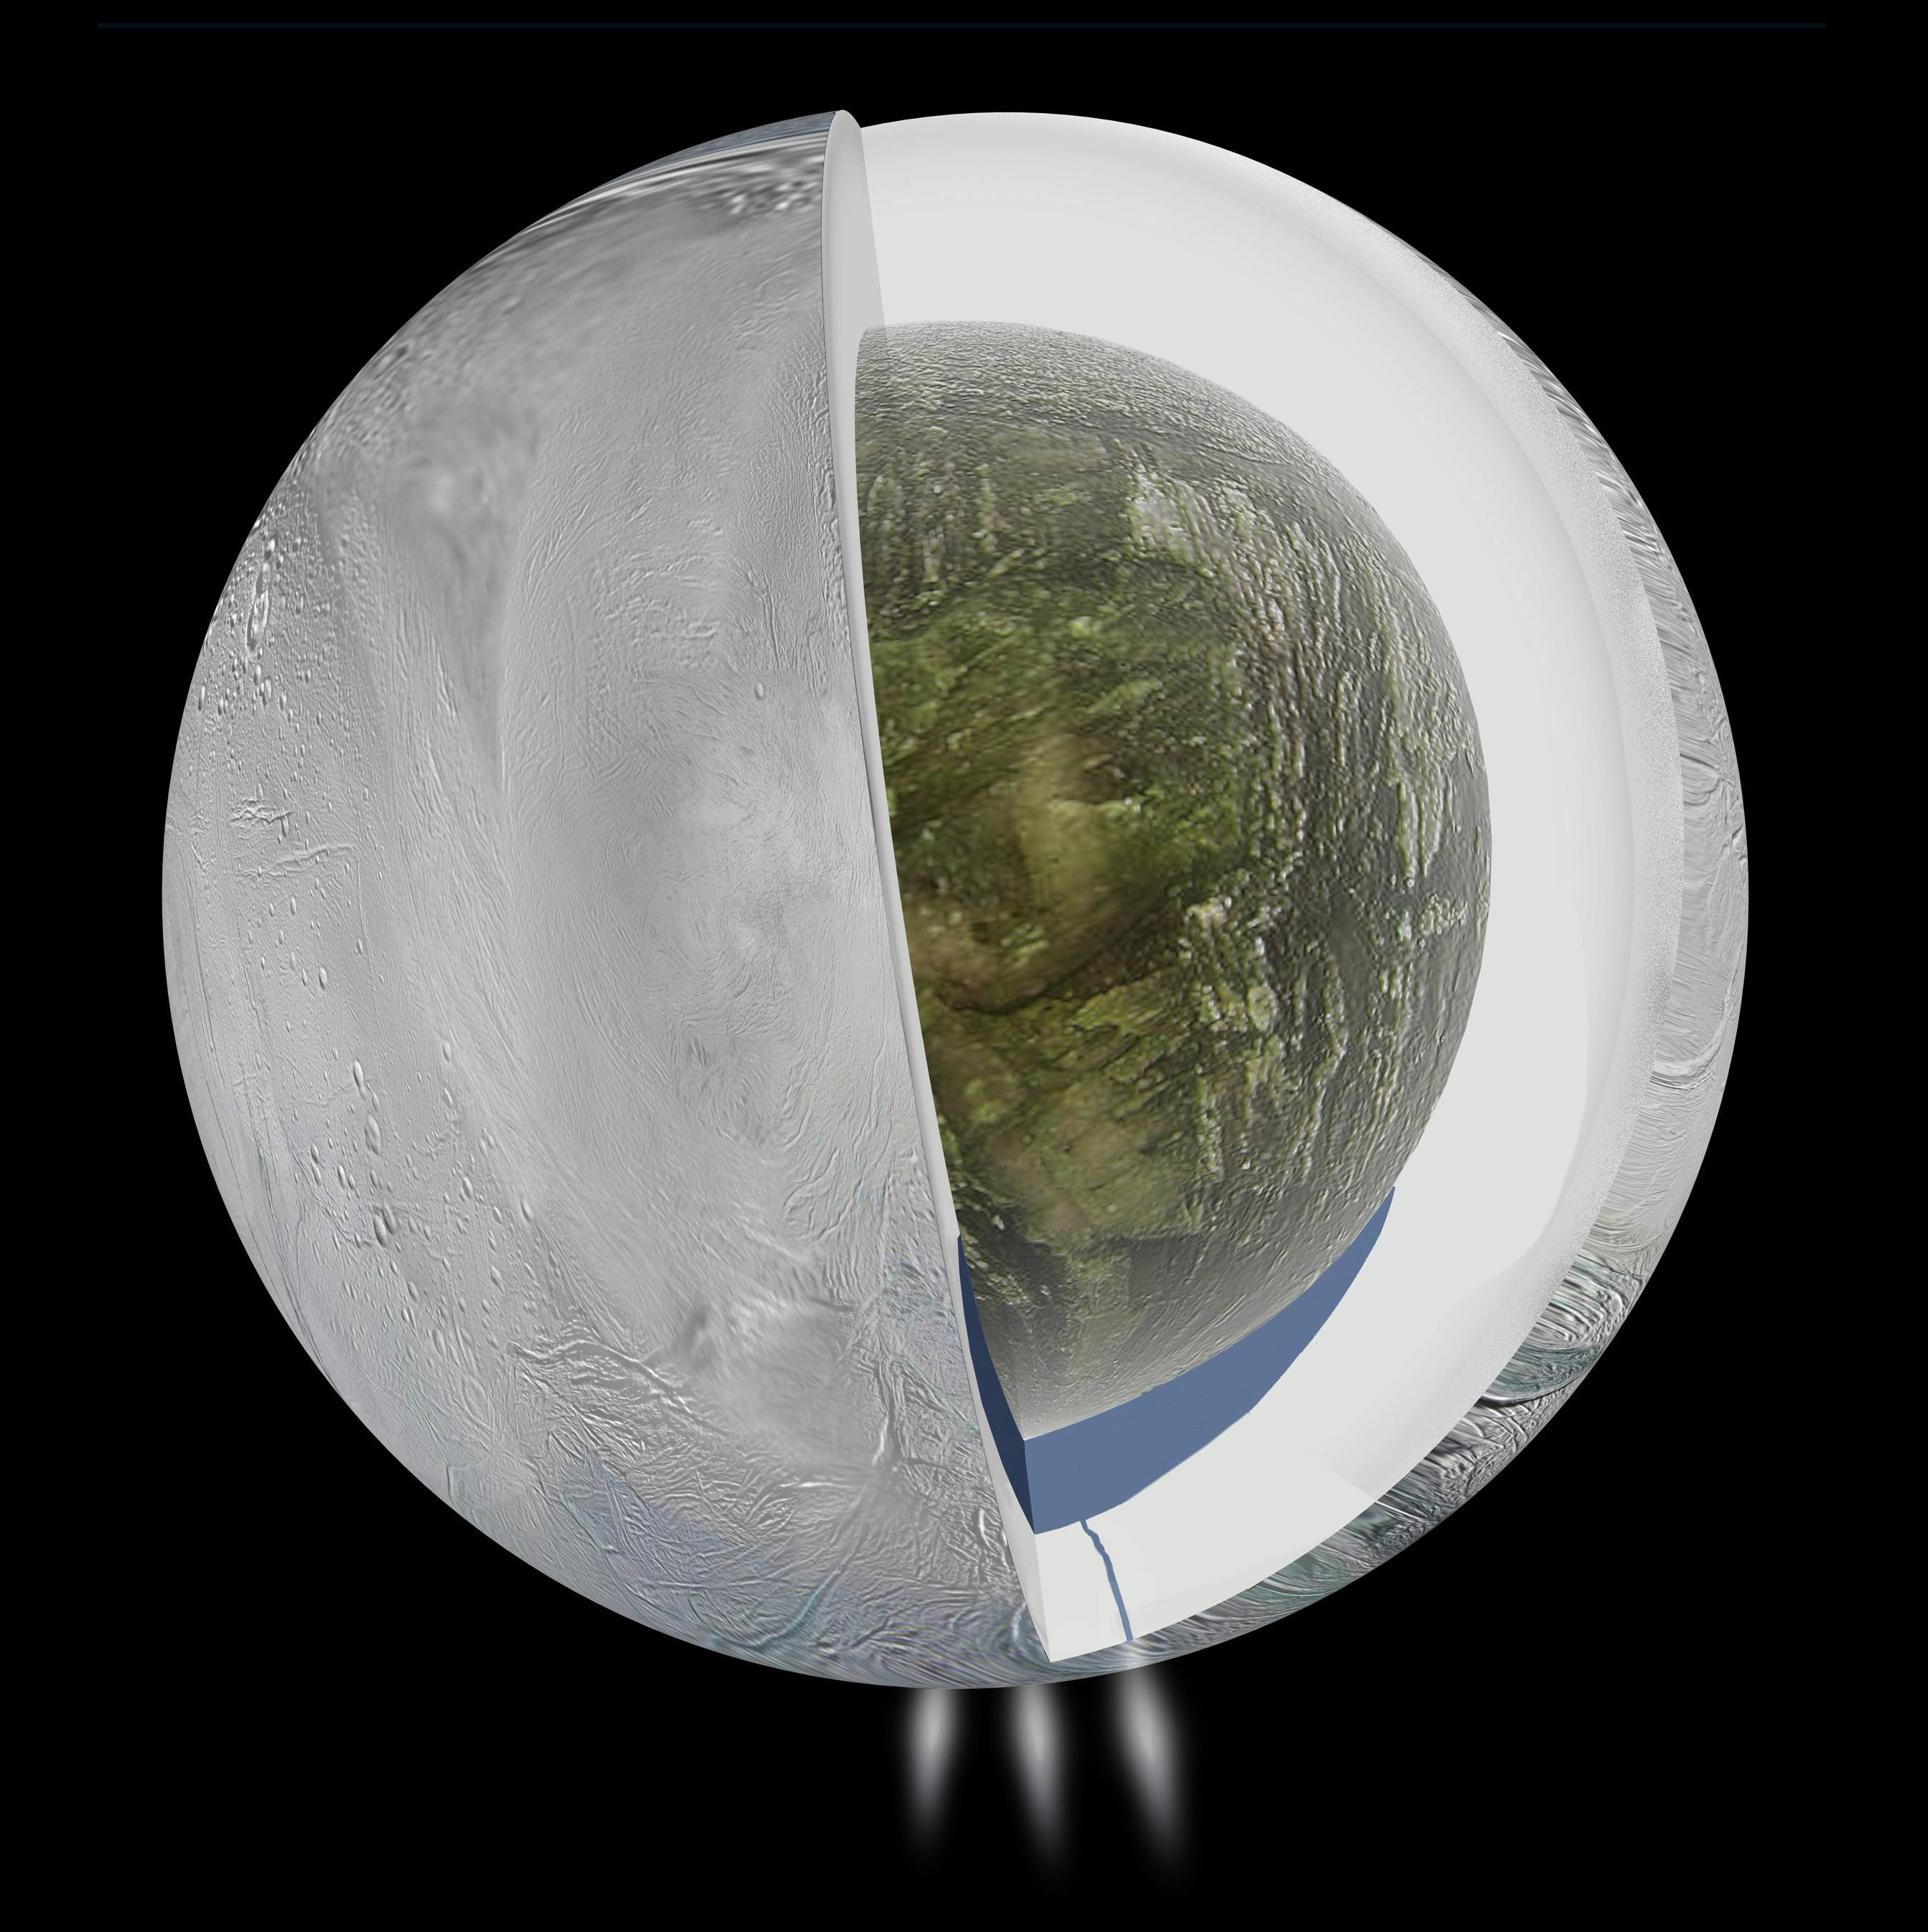 This illustration provided by NASA and based on Cassini spacecraft measurements shows the possible interior of Saturn's moon Enceladus -- an icy outer shell and a low density, rocky core with a regional water ocean sandwiched in between the two at southern latitudes. Plumes of water vapor and ice, first detected in 2005, are depicted in the south polar region.